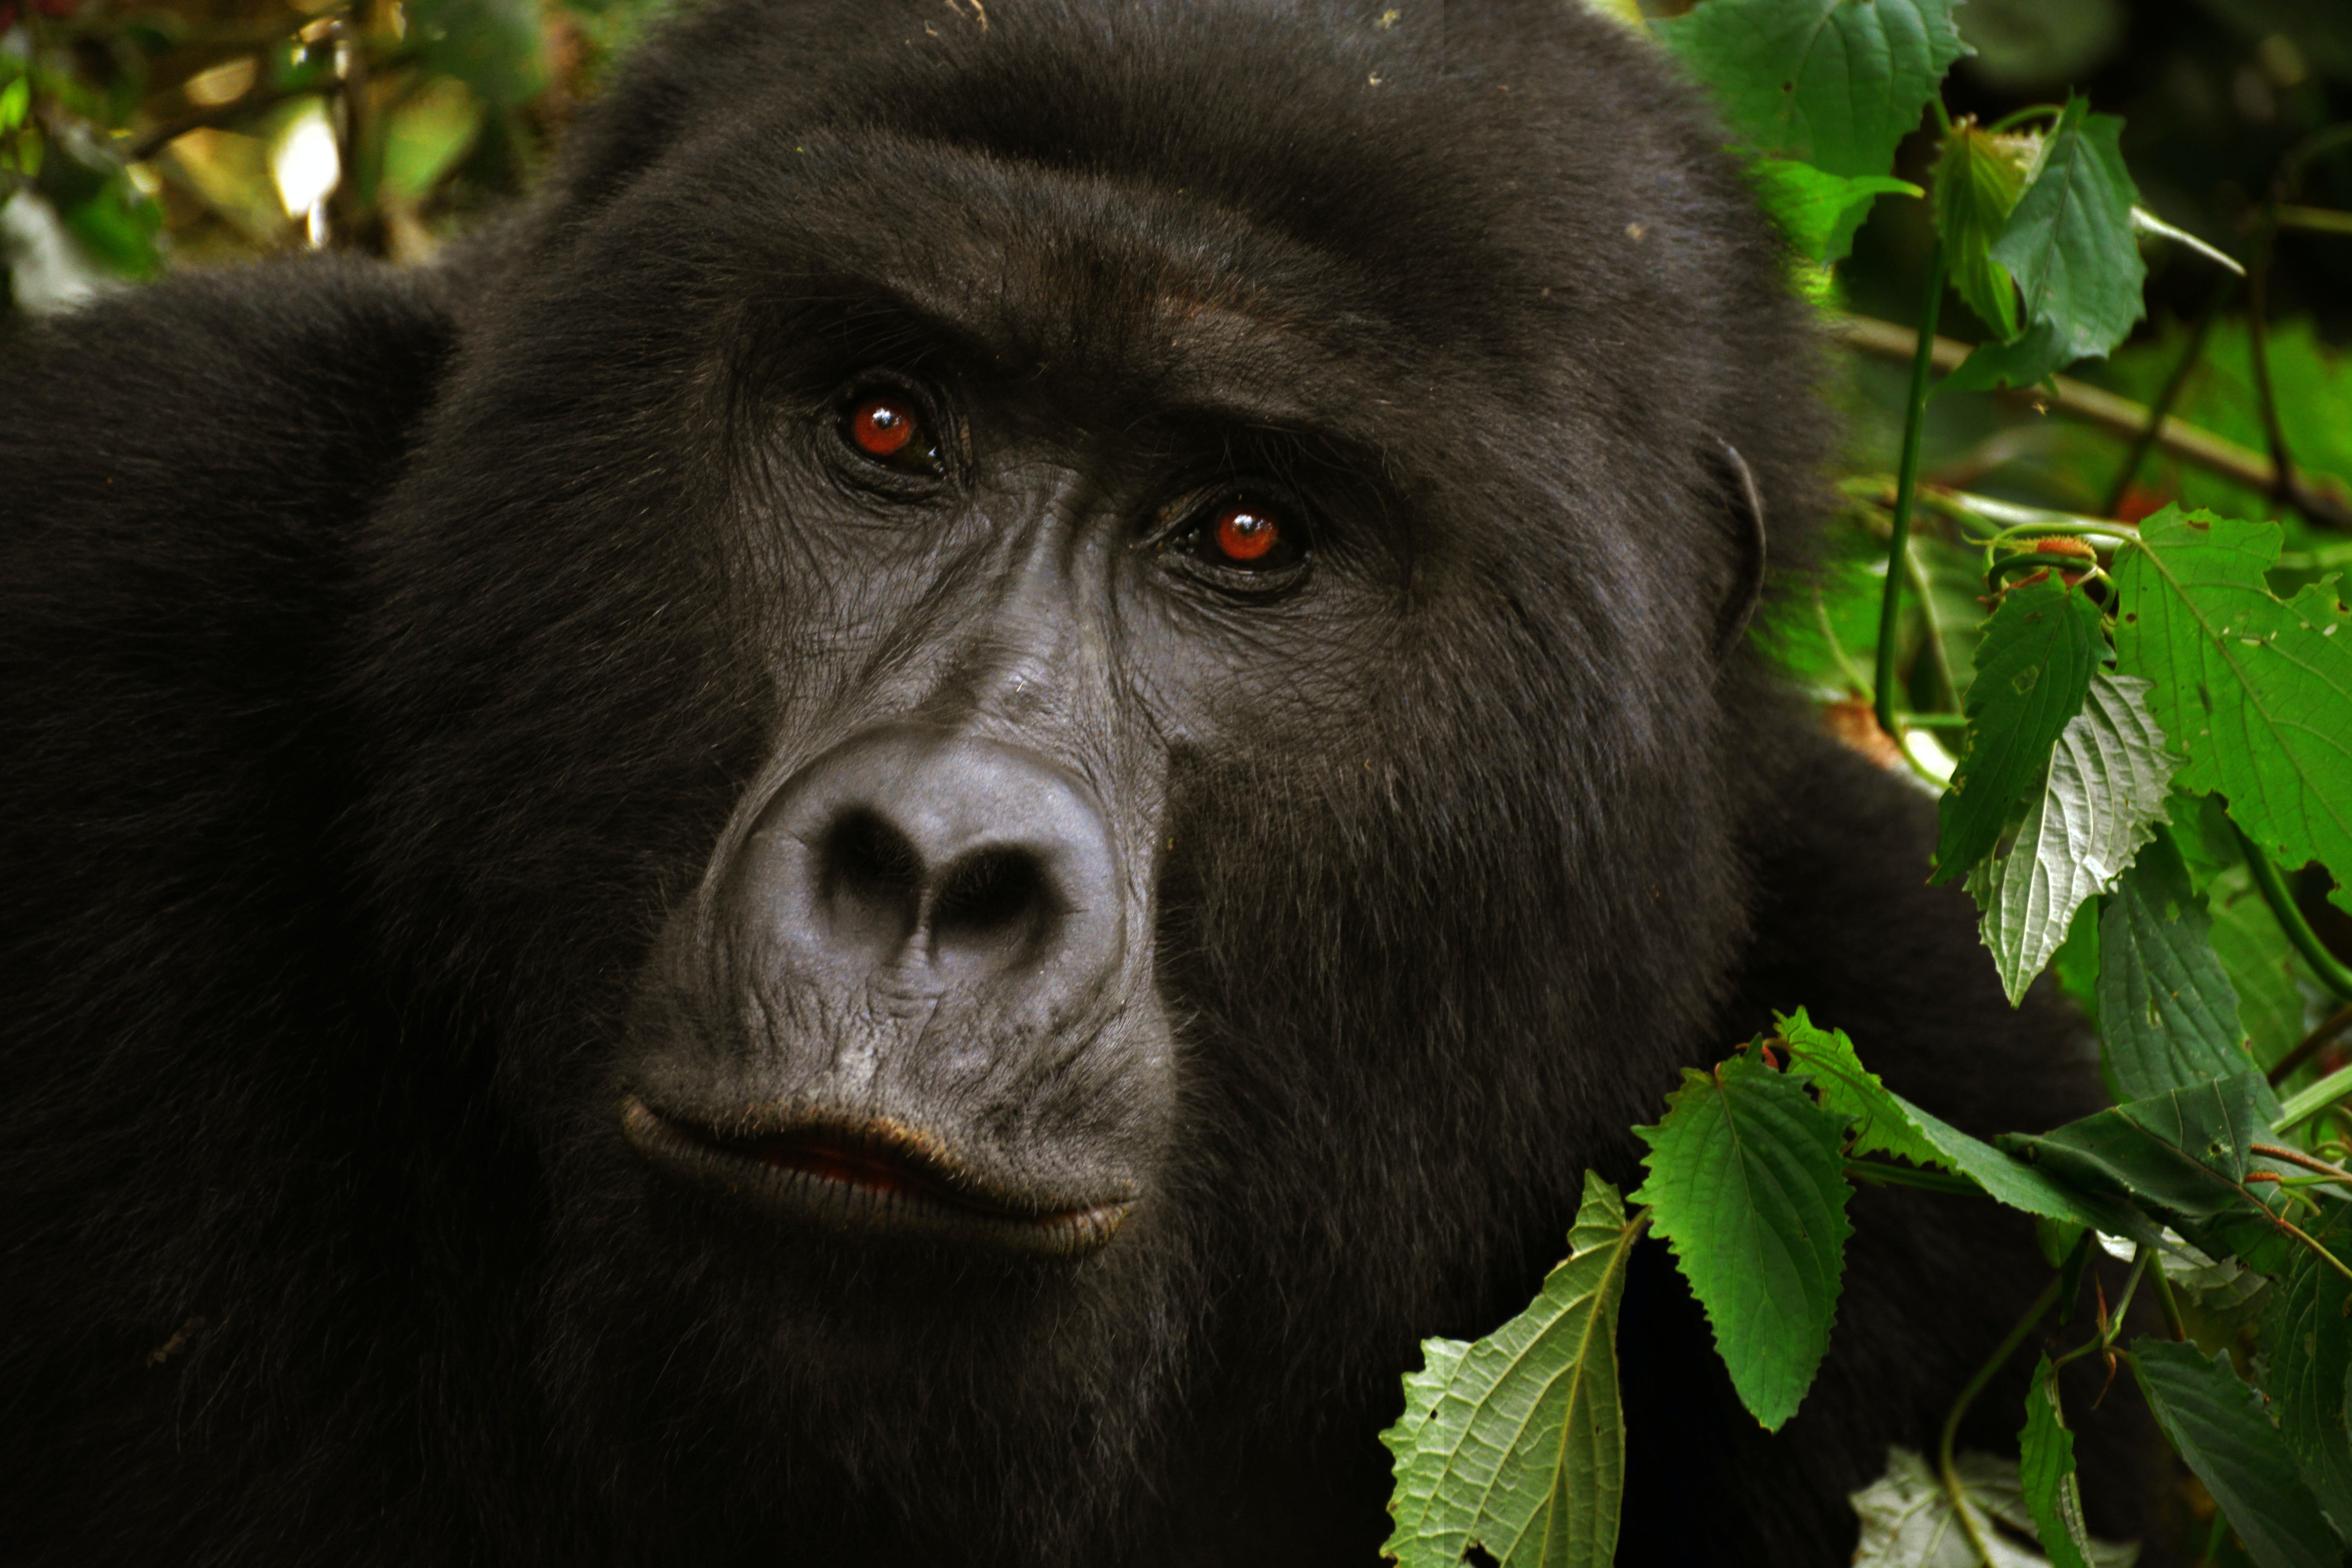 A gorilla with red eyes.   Photo: Pexels/ The World Hopper